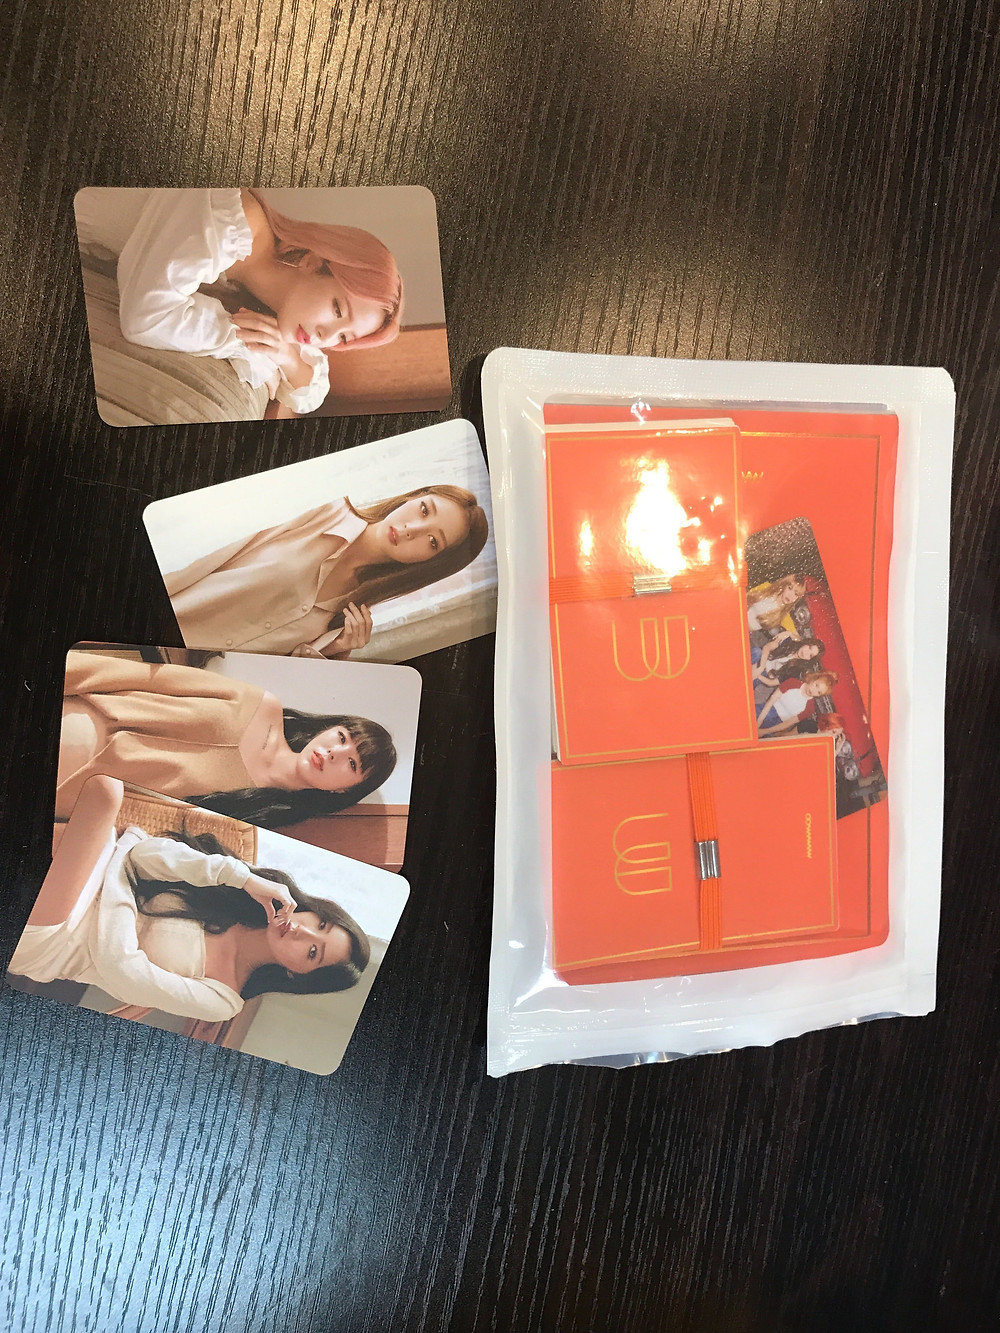 Mamamoo Merch in Korea, Mamamoo melting Kino item.